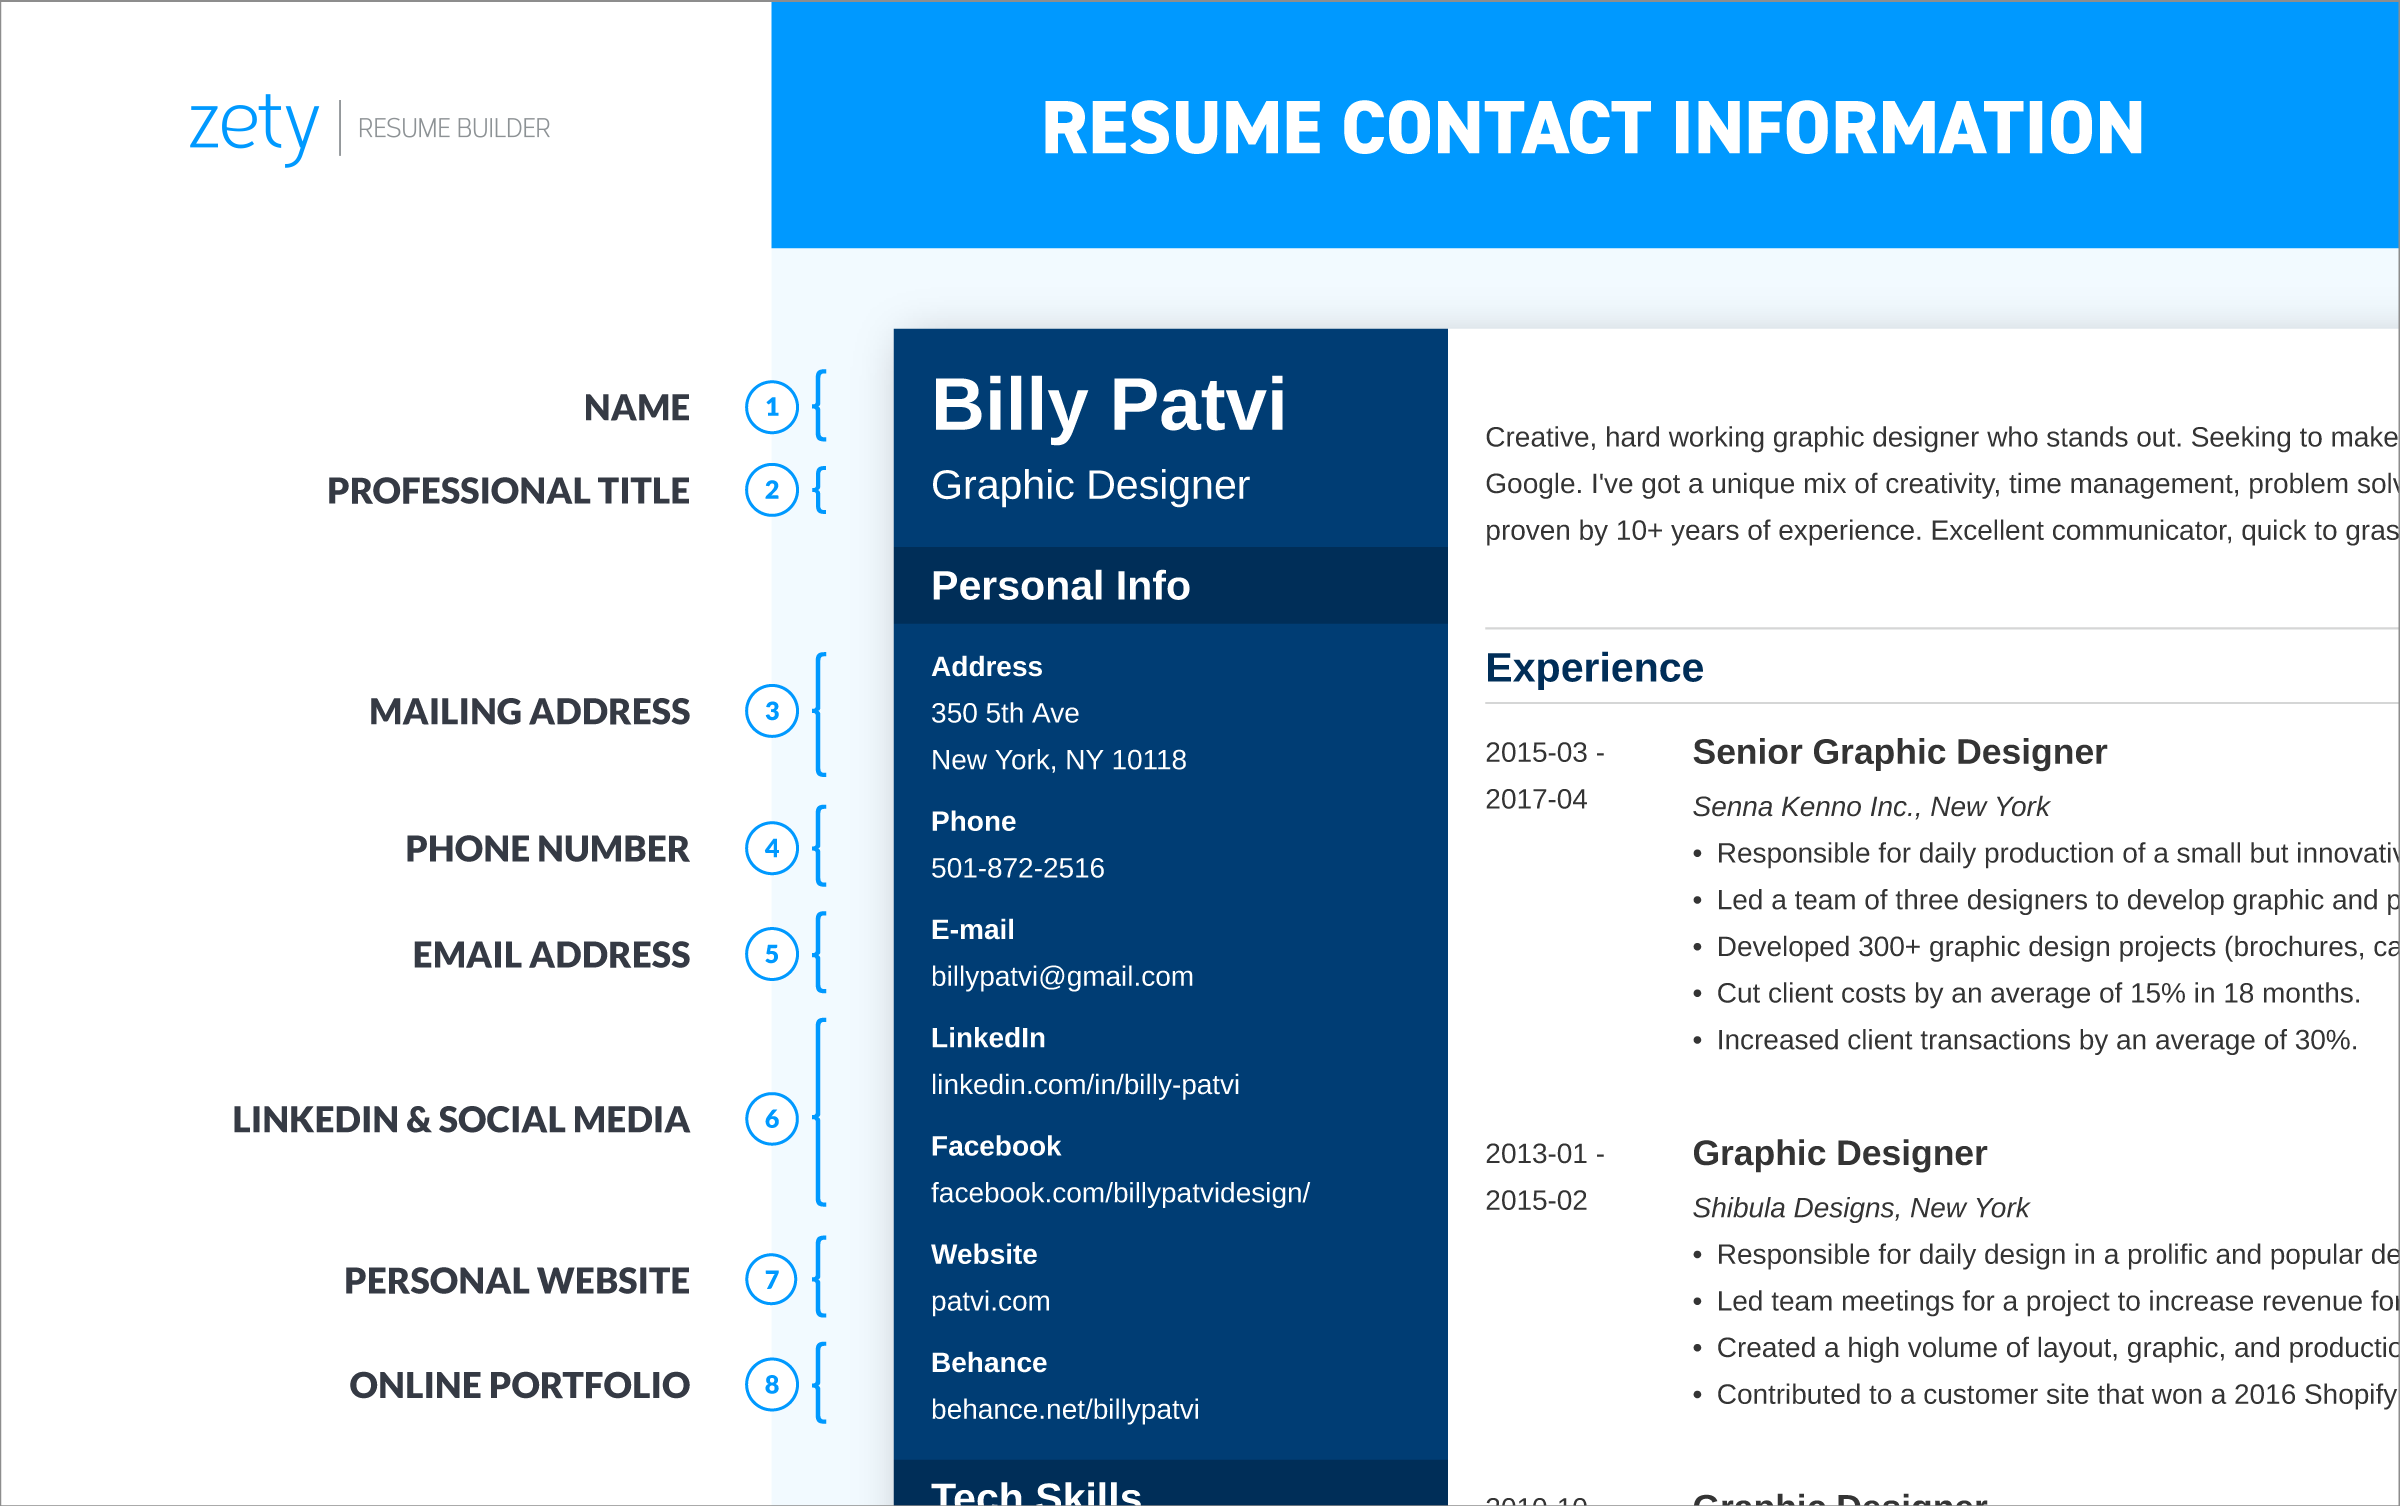 good contact information on resume with address phone number and social media